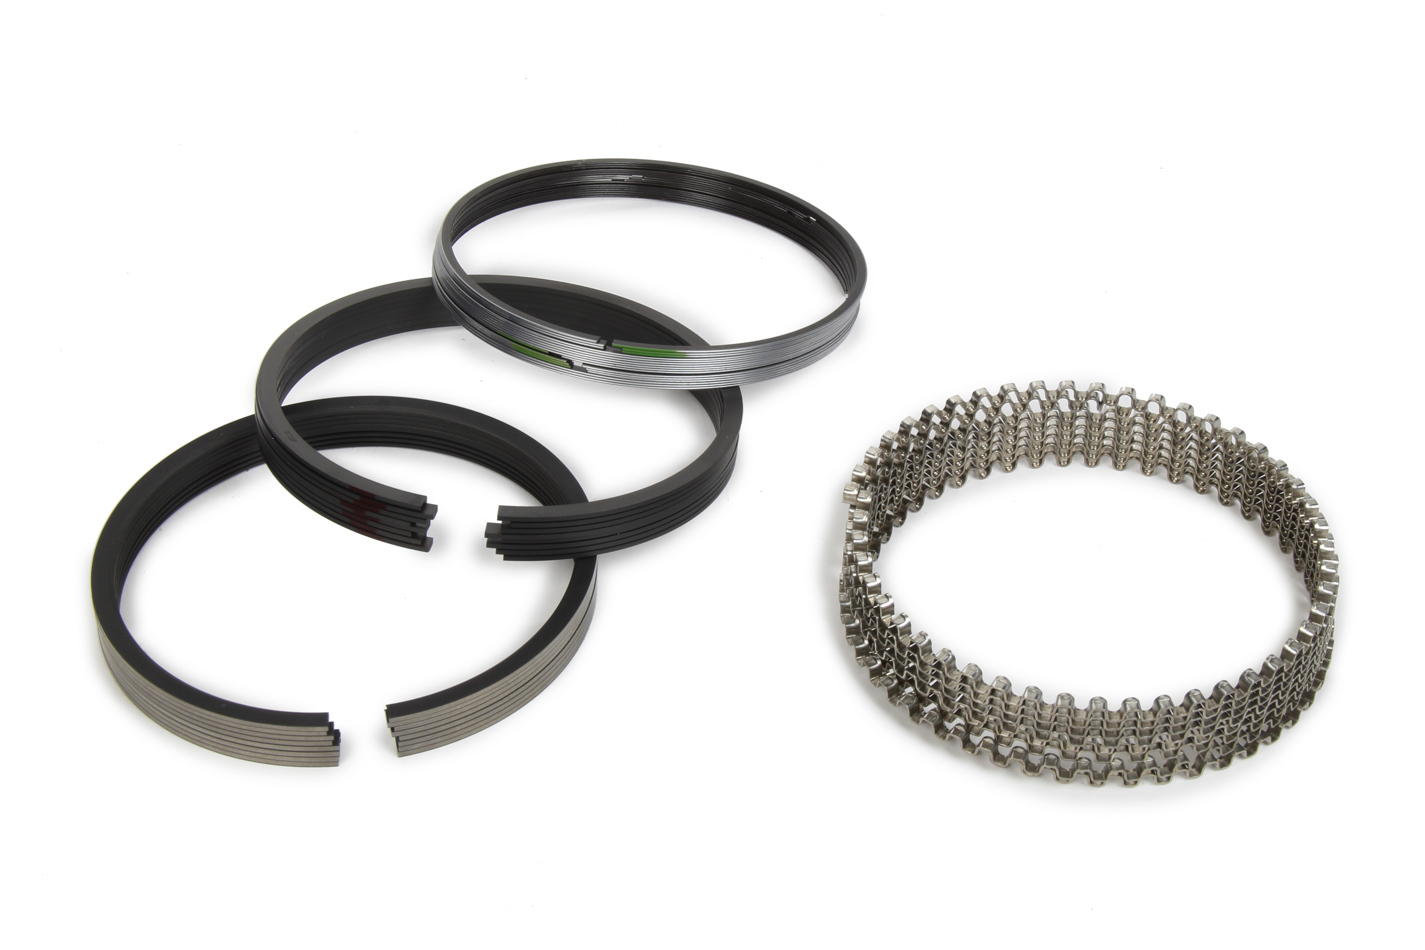 Michigan 77 315-0005.065 Piston Rings, 4.060 in Bore, File Fit, 1/16 x 1/16 x 3/16 in Thick, Low Tension, Plasma Moly, 8 Cylinder, Kit